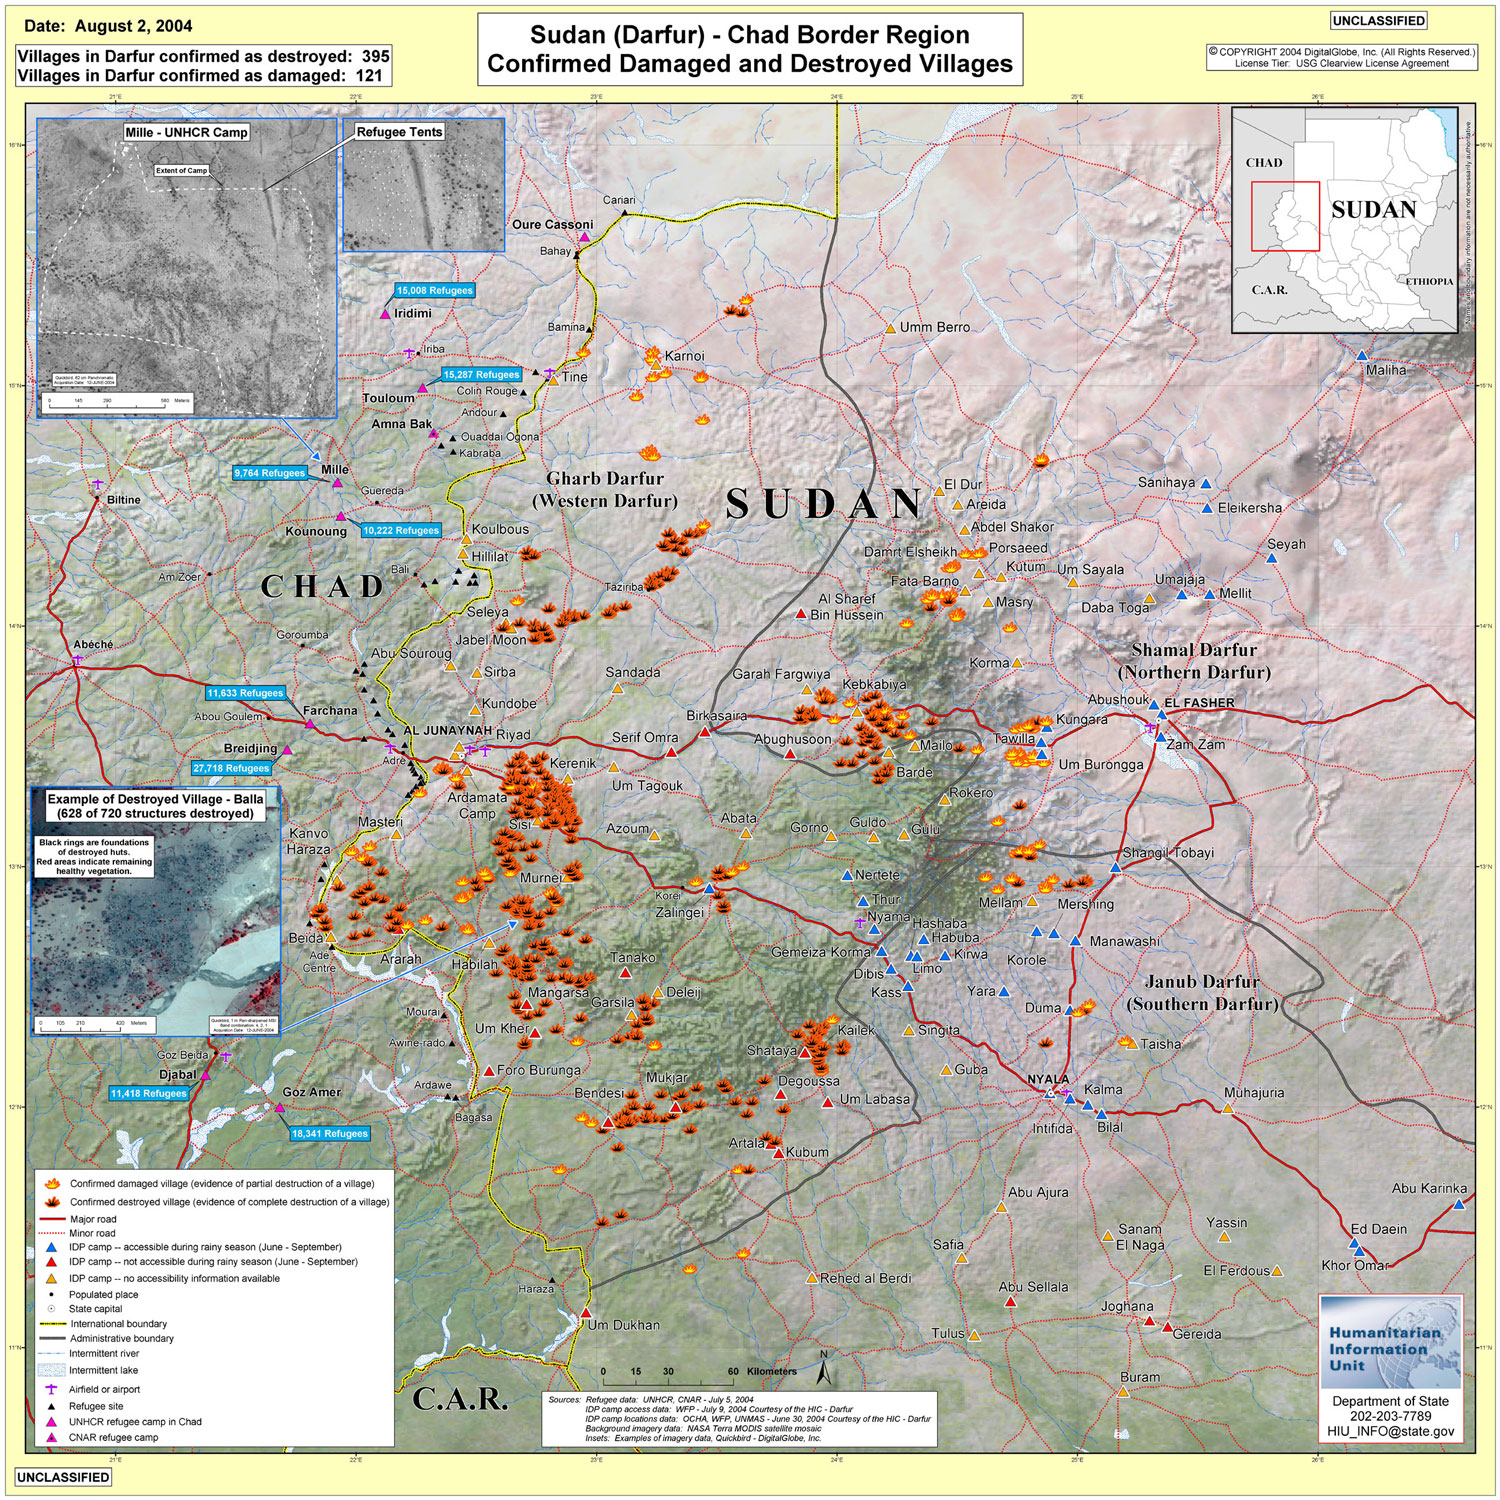 Map of Confirmed Damaged and Destroyed Villages, Darfur, Sudan, August 2, 2004